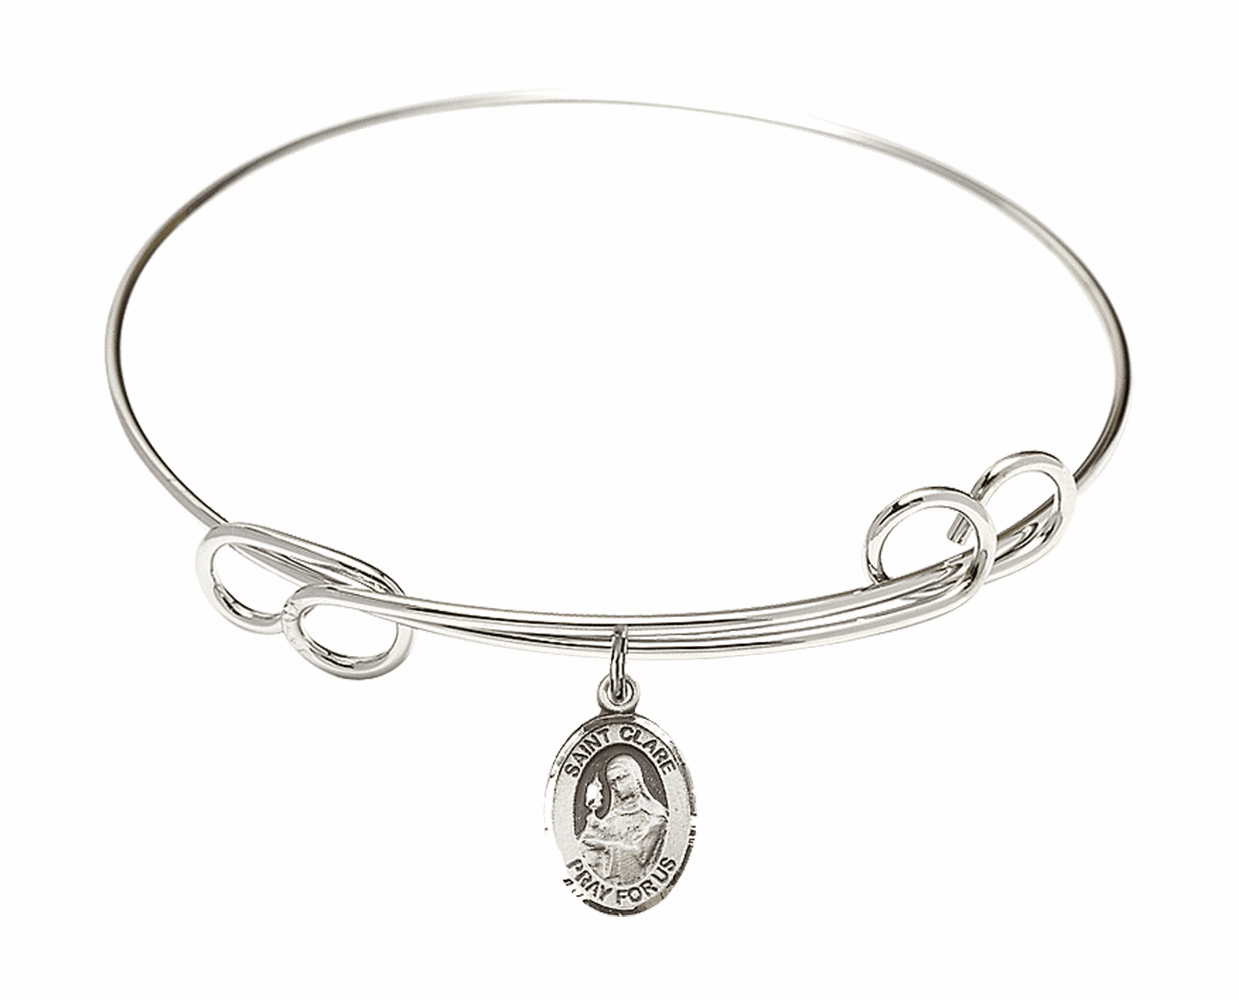 Round Loop St Clare of Assisi Bangle Charm Bracelet by Bliss